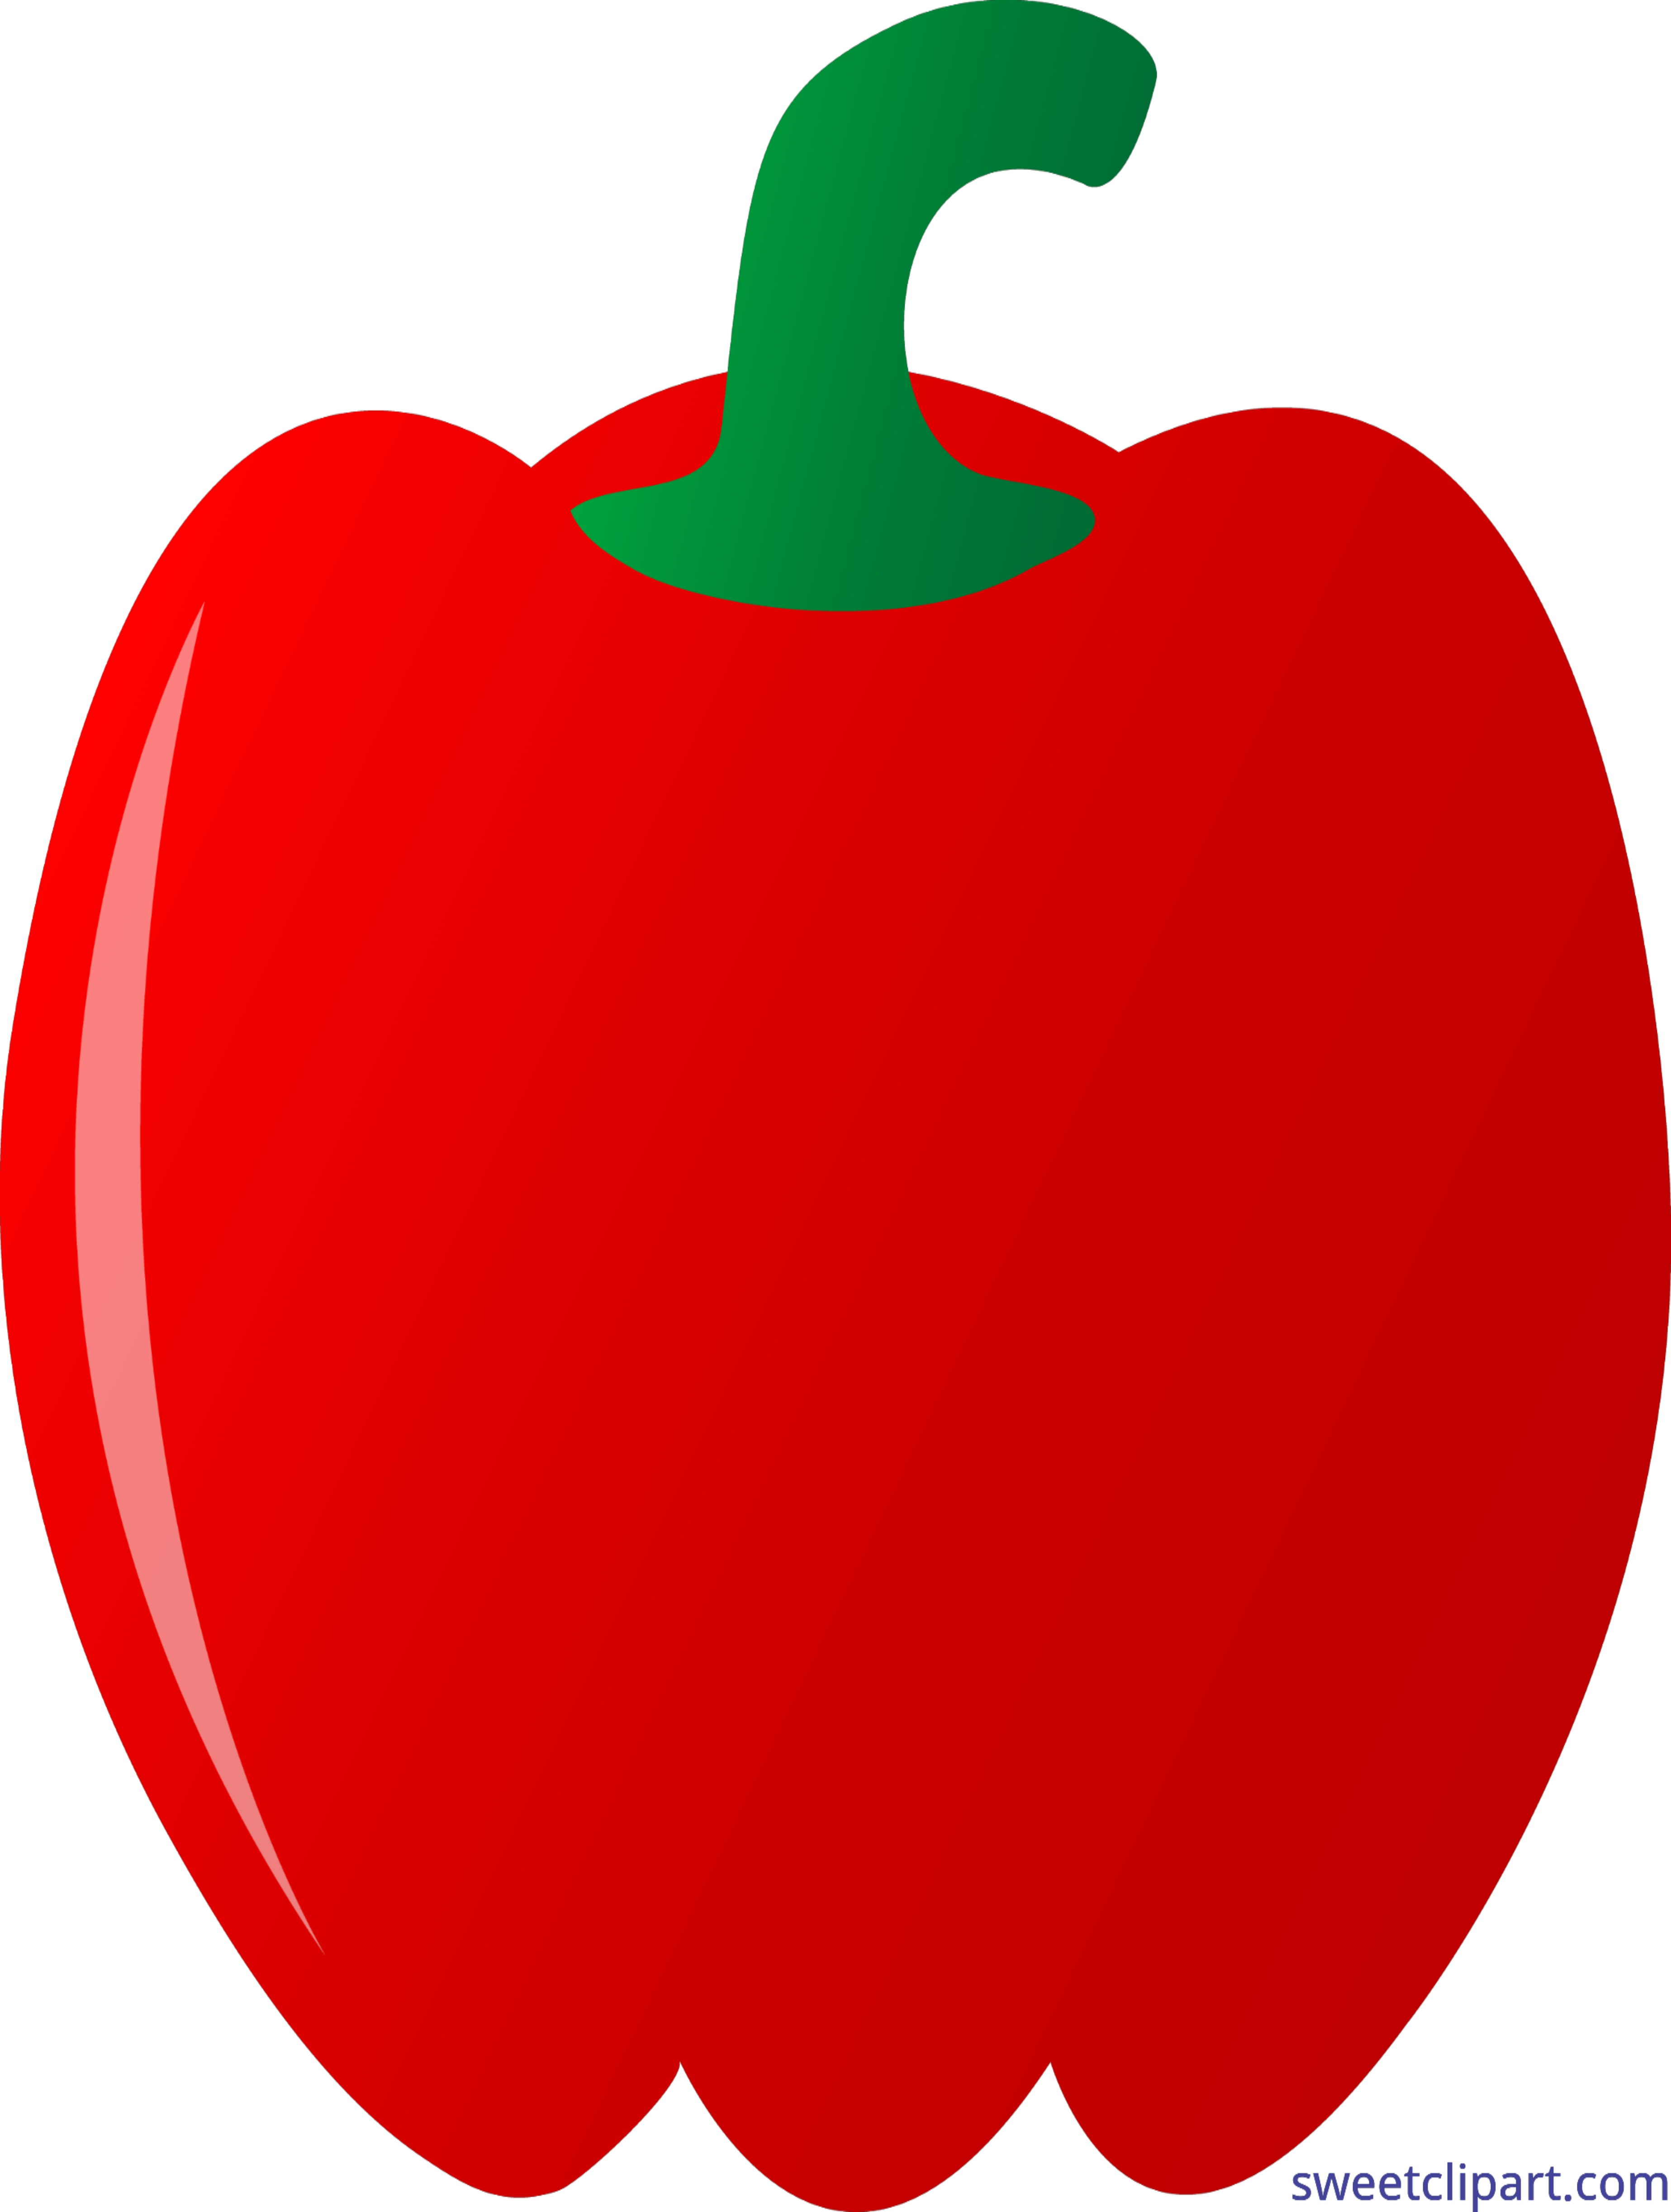 Sweet pepper clipart banner royalty free stock Red Bell Pepper Clip Art - Sweet Clip Art banner royalty free stock